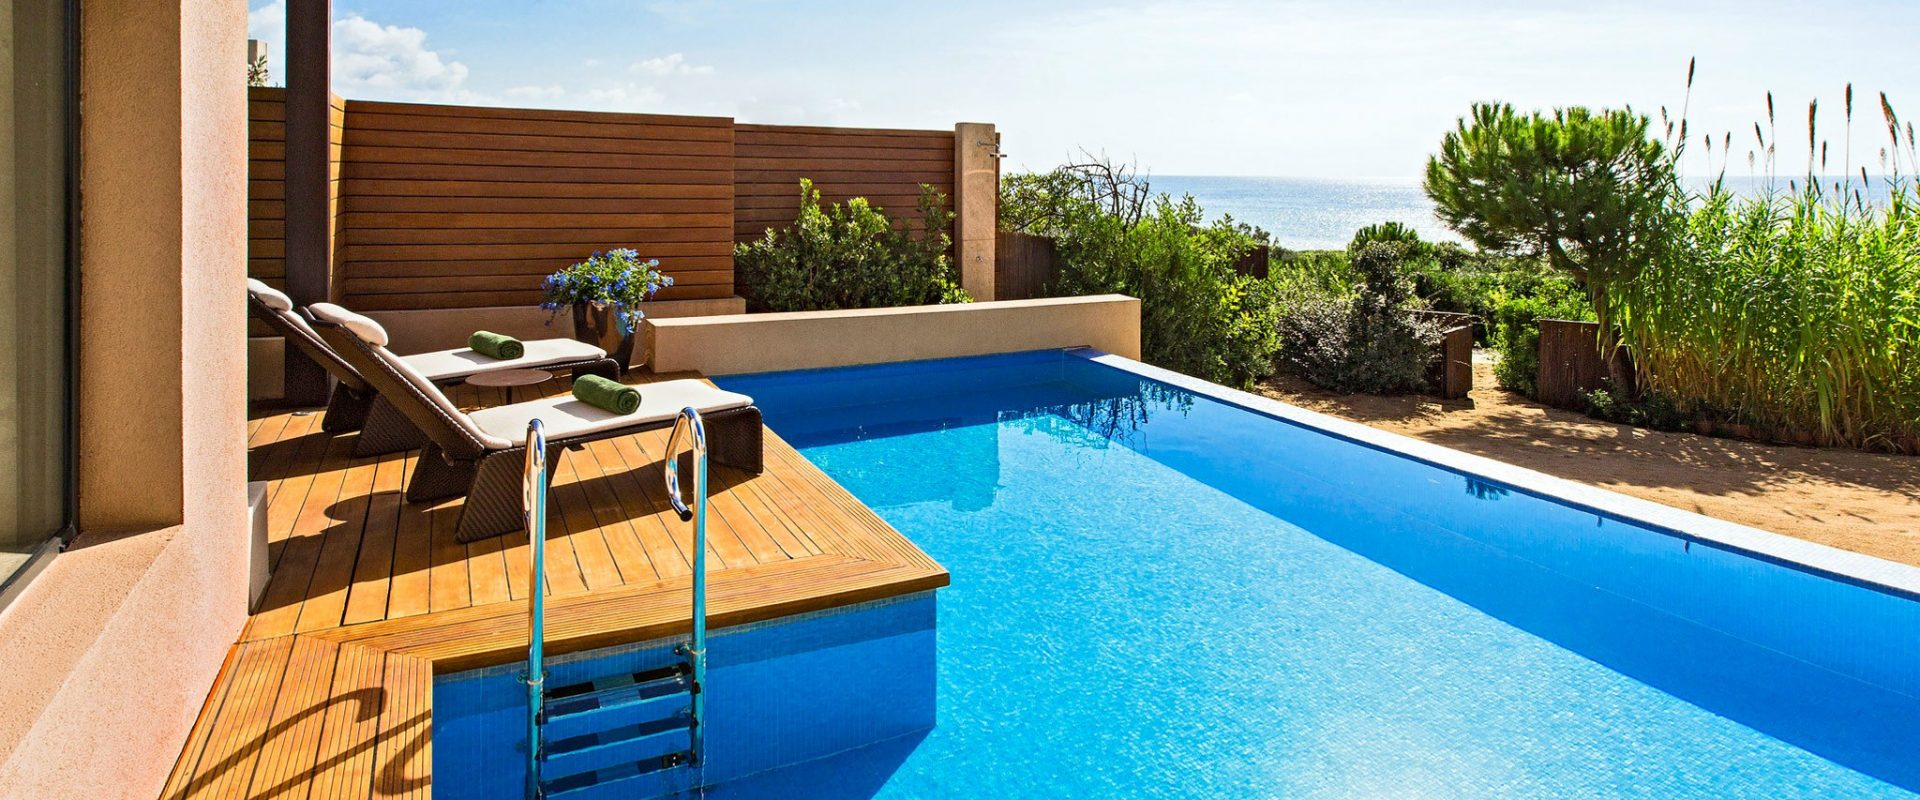 blue swimming pool beside concrete house